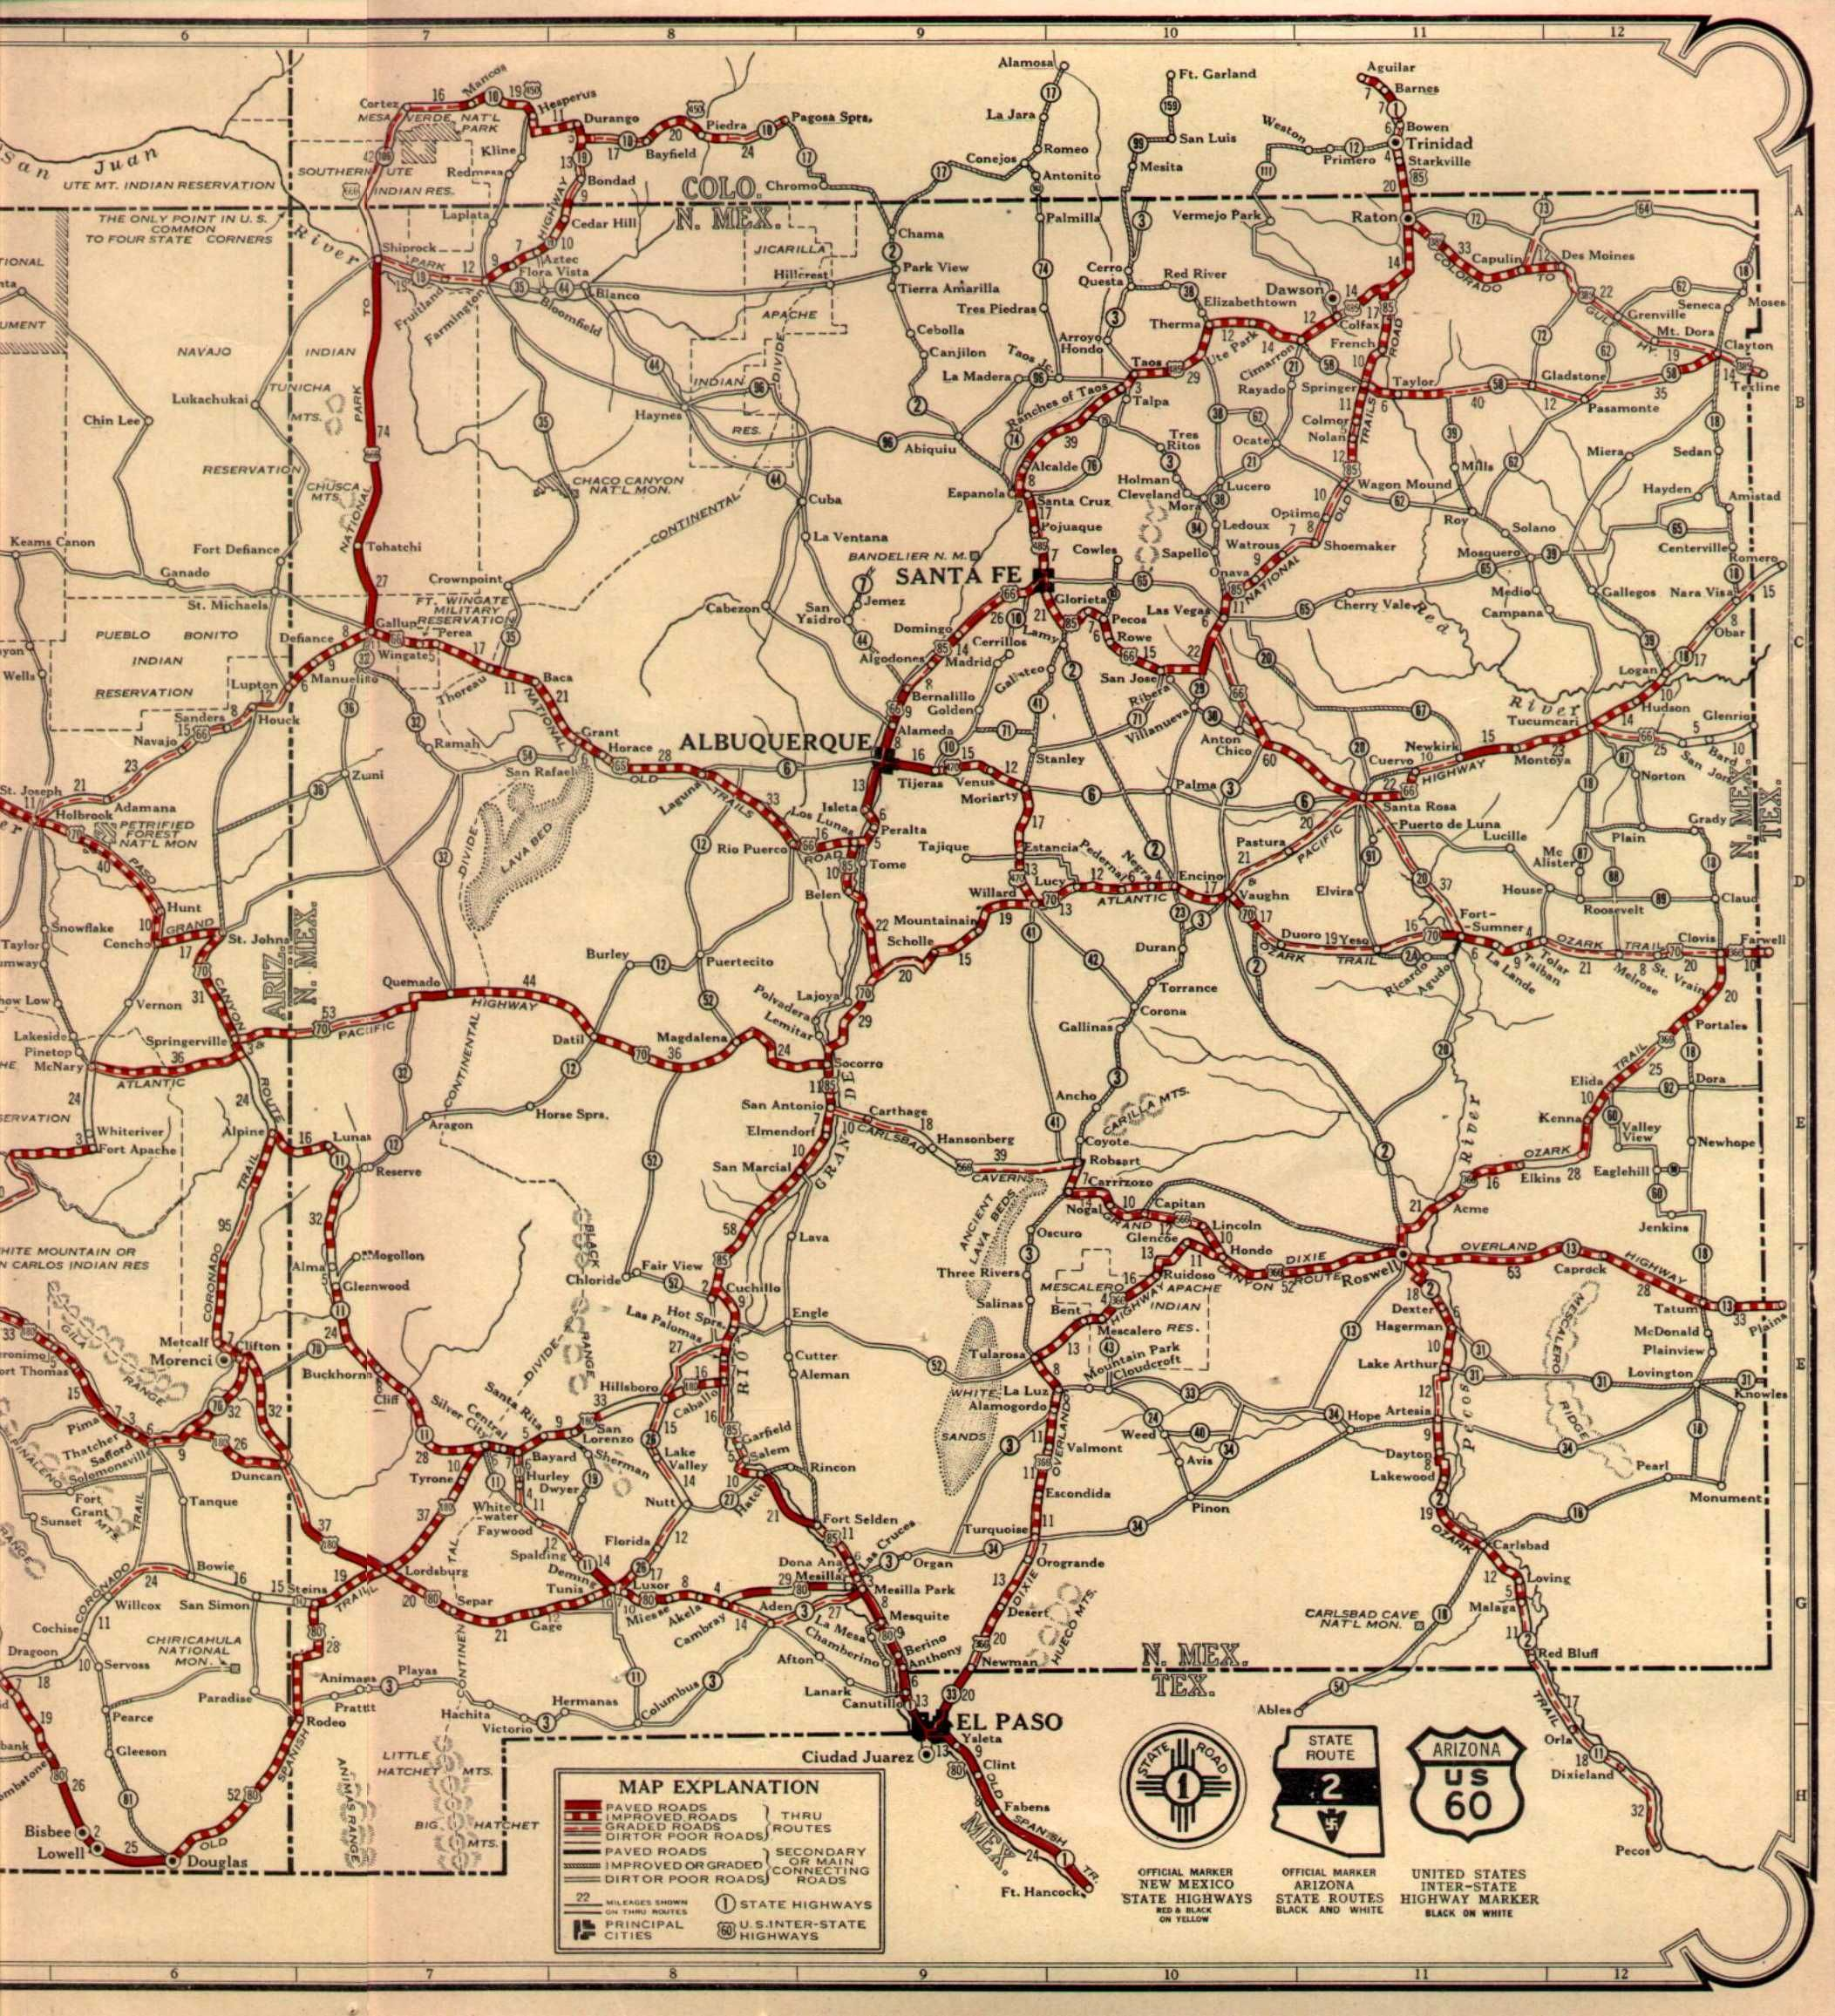 Route  On  AZNM Map Maps Pinterest - Chicago map route 66